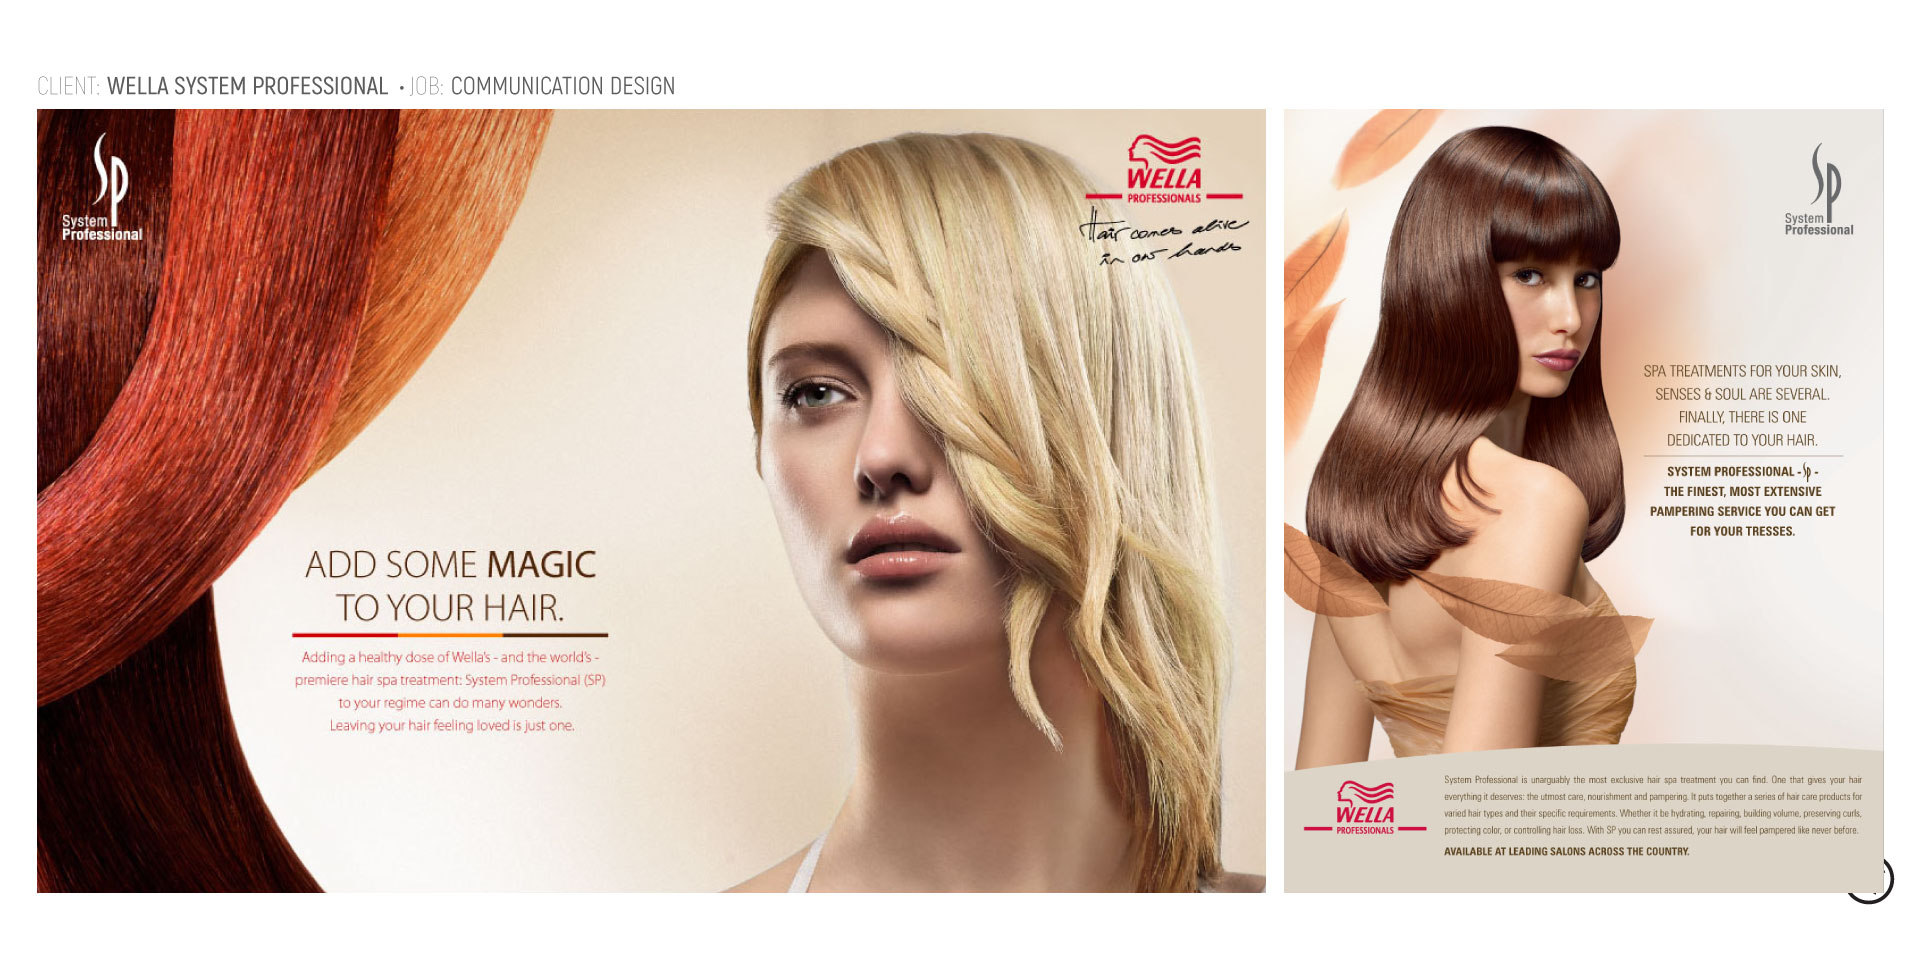 YesYesWhyNot_Communication-Design__Wella-#9